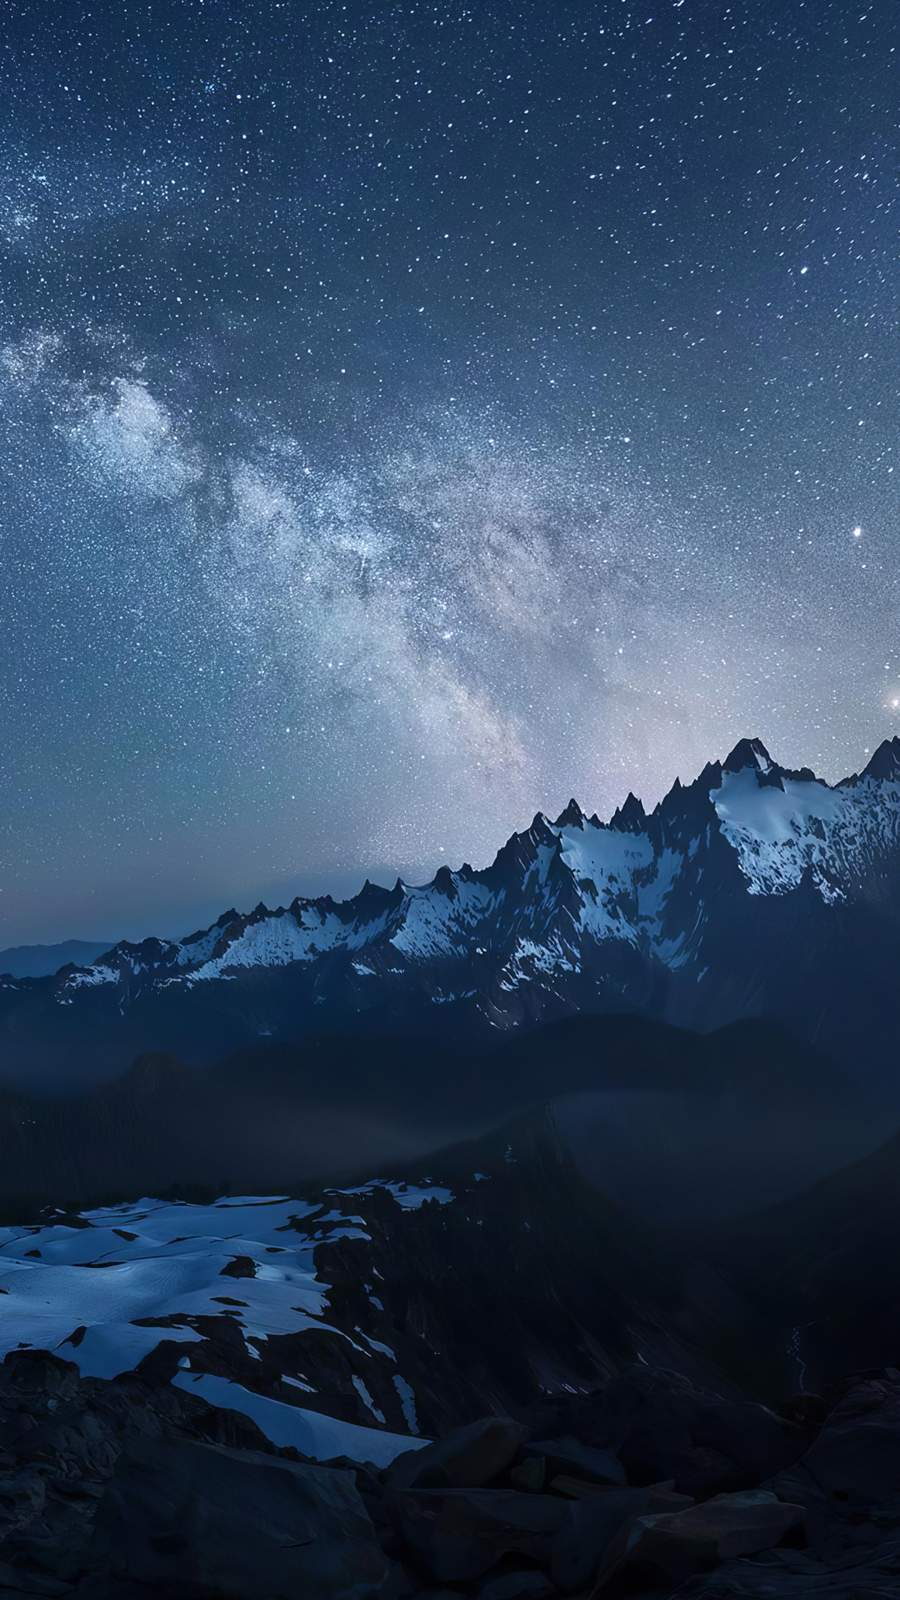 Snow Mountains Night Starry Sky iPhone Wallpaper